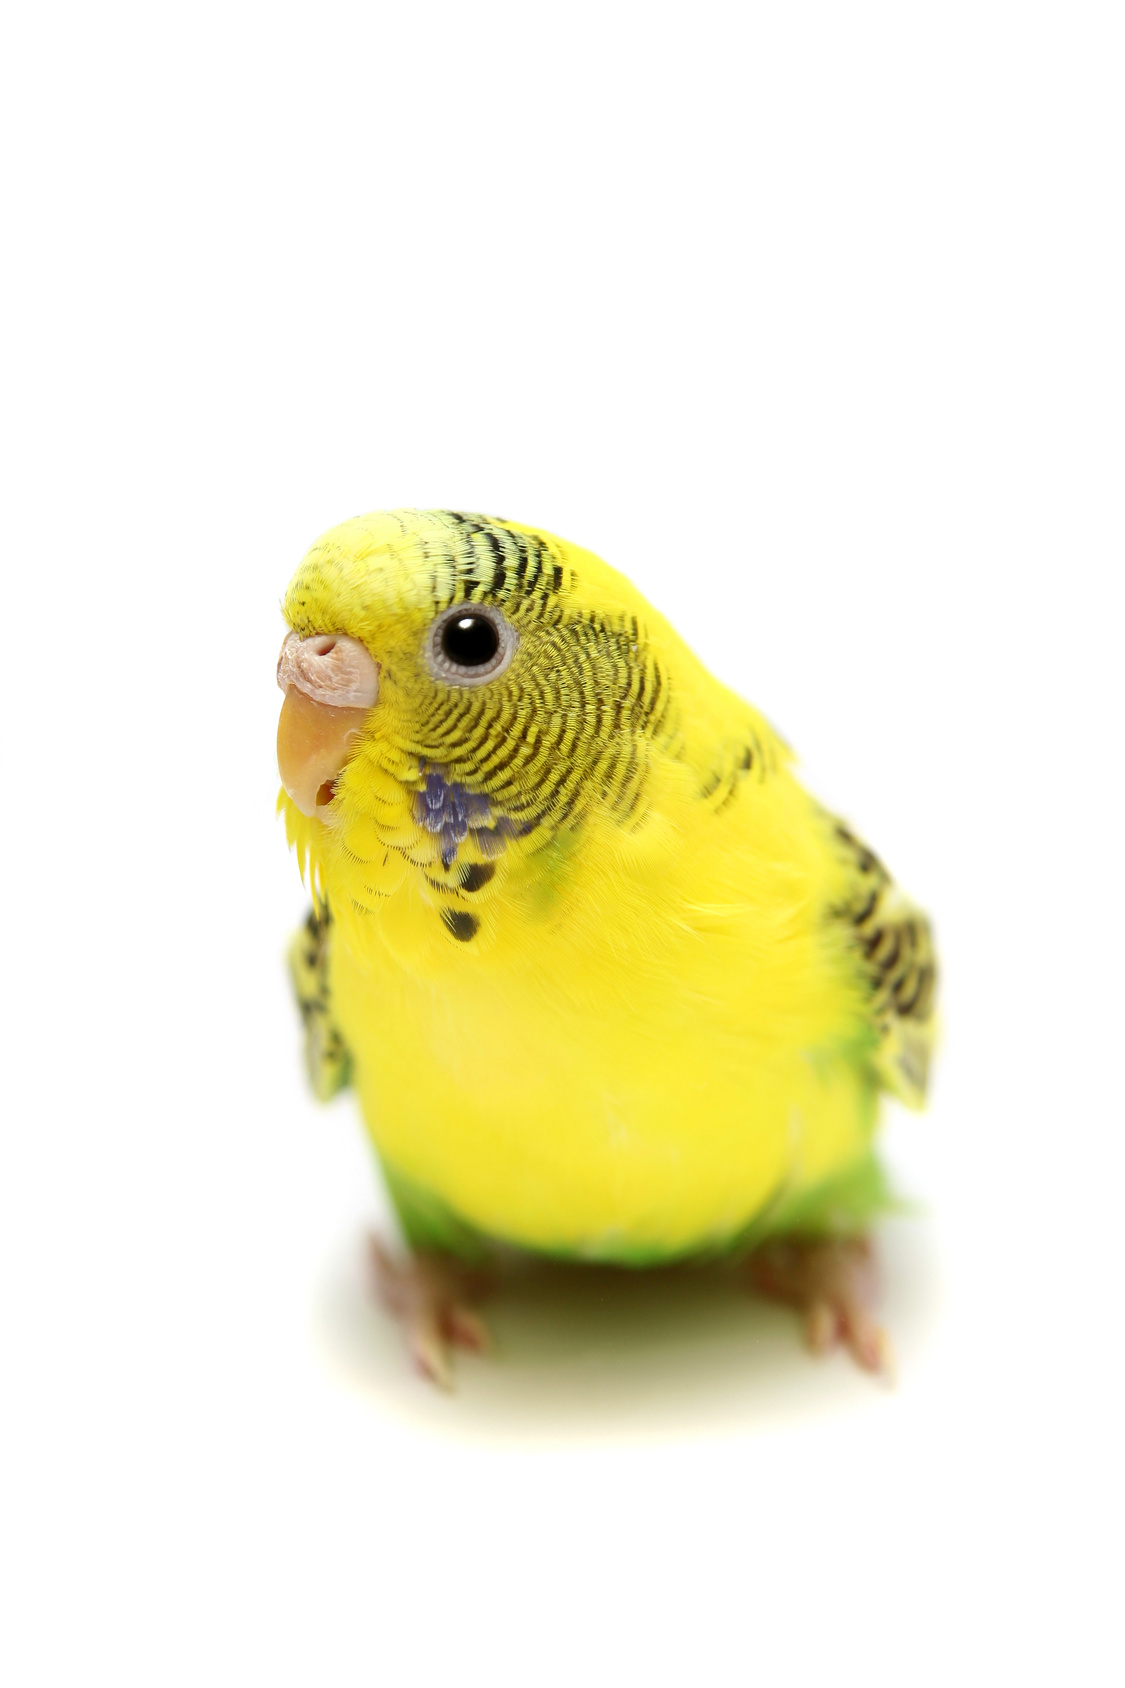 Budgie female on the white background